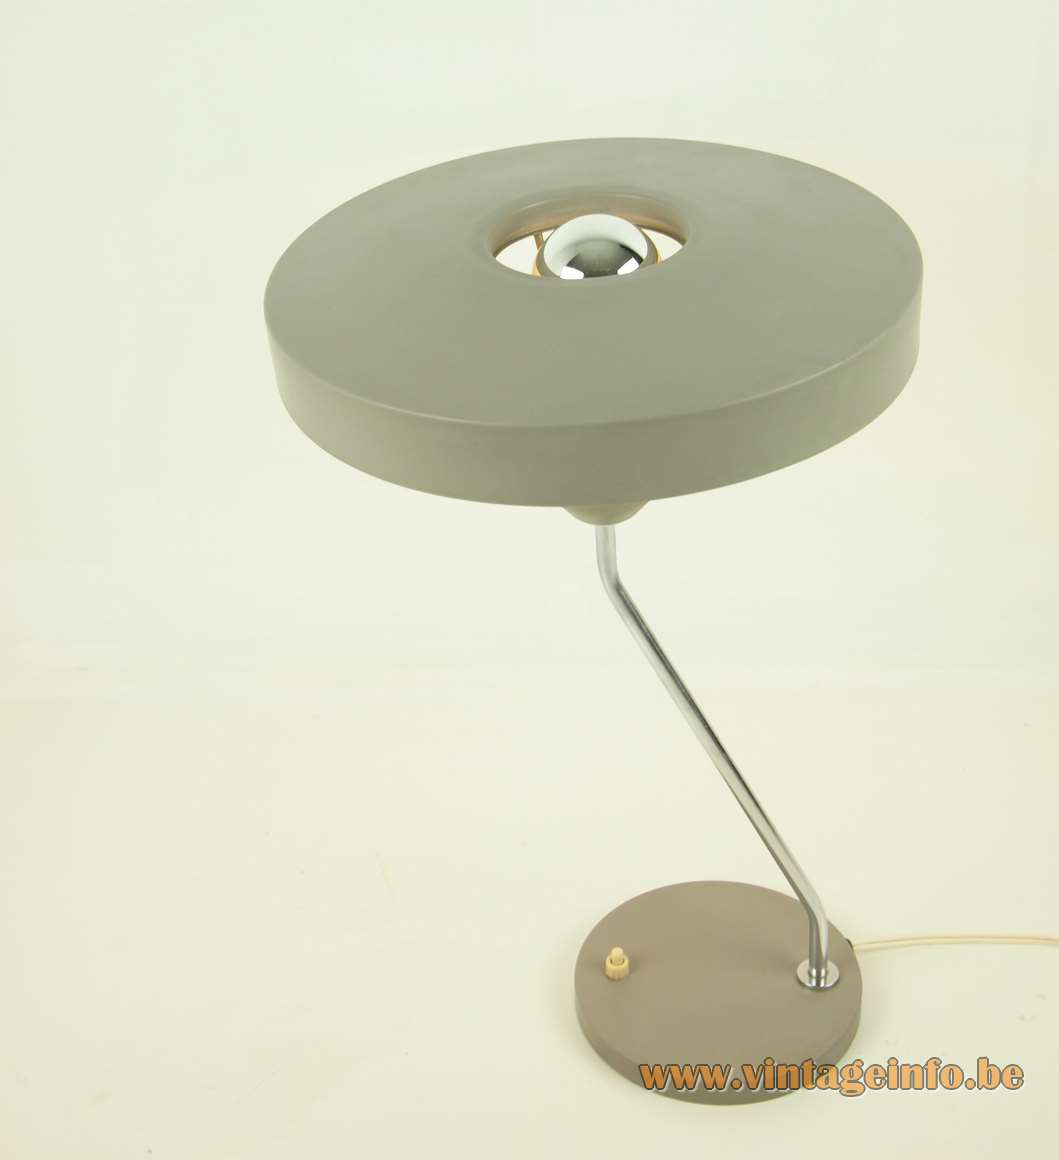 Philips Romeo Desk Lamp mushroom metal lampshade chrome folded rod round base Louis kalff 1960s 1970s